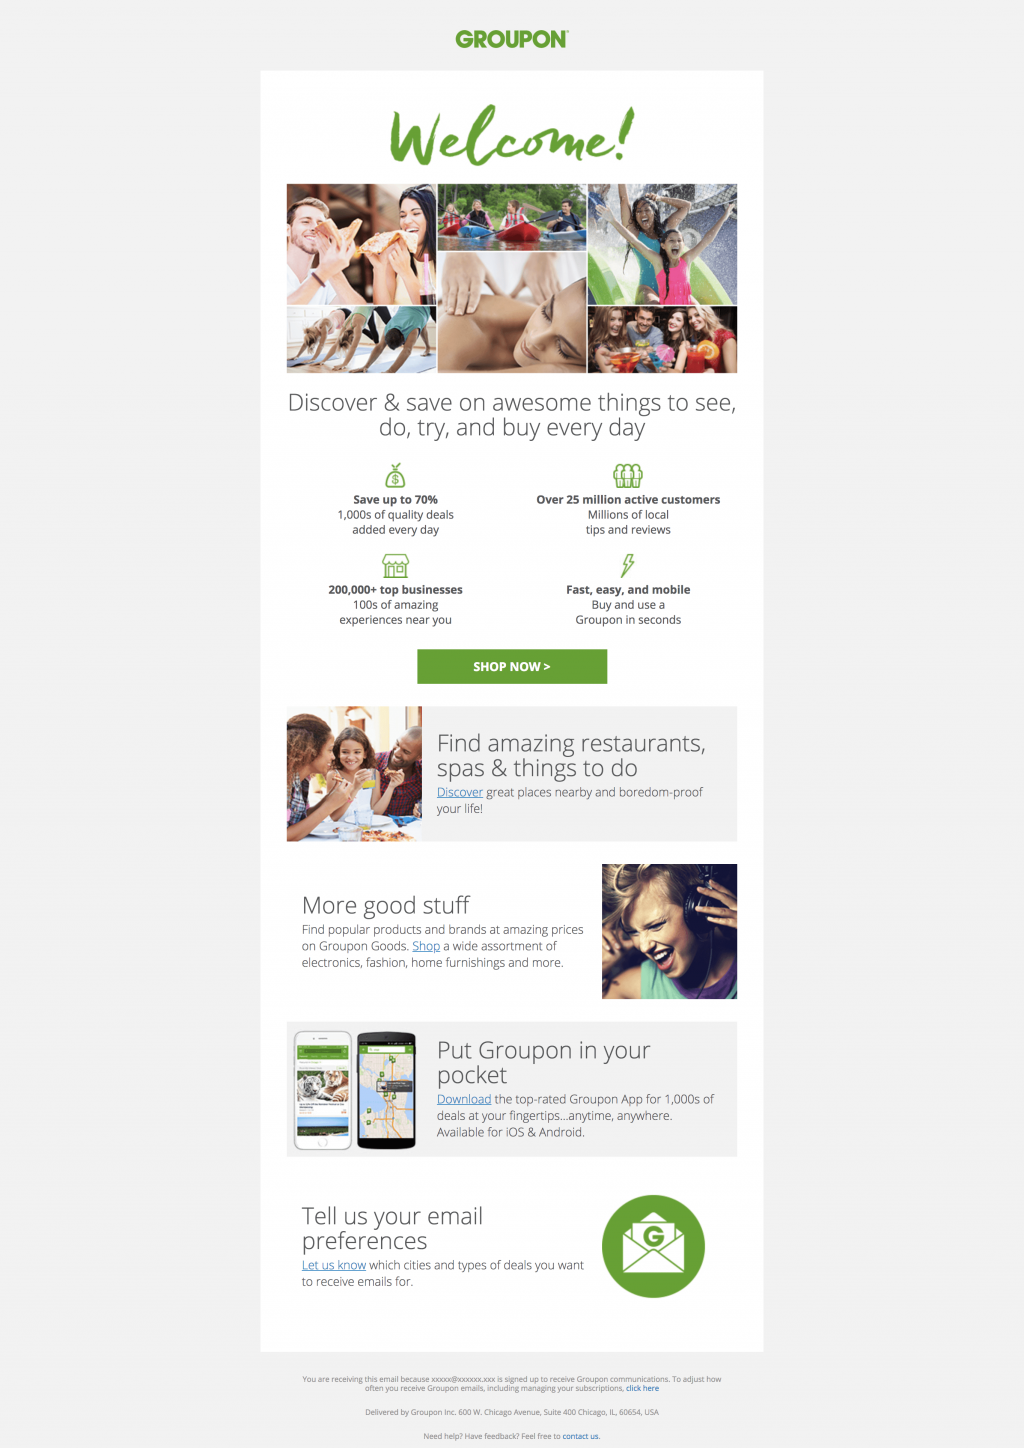 Example of a Groupon email